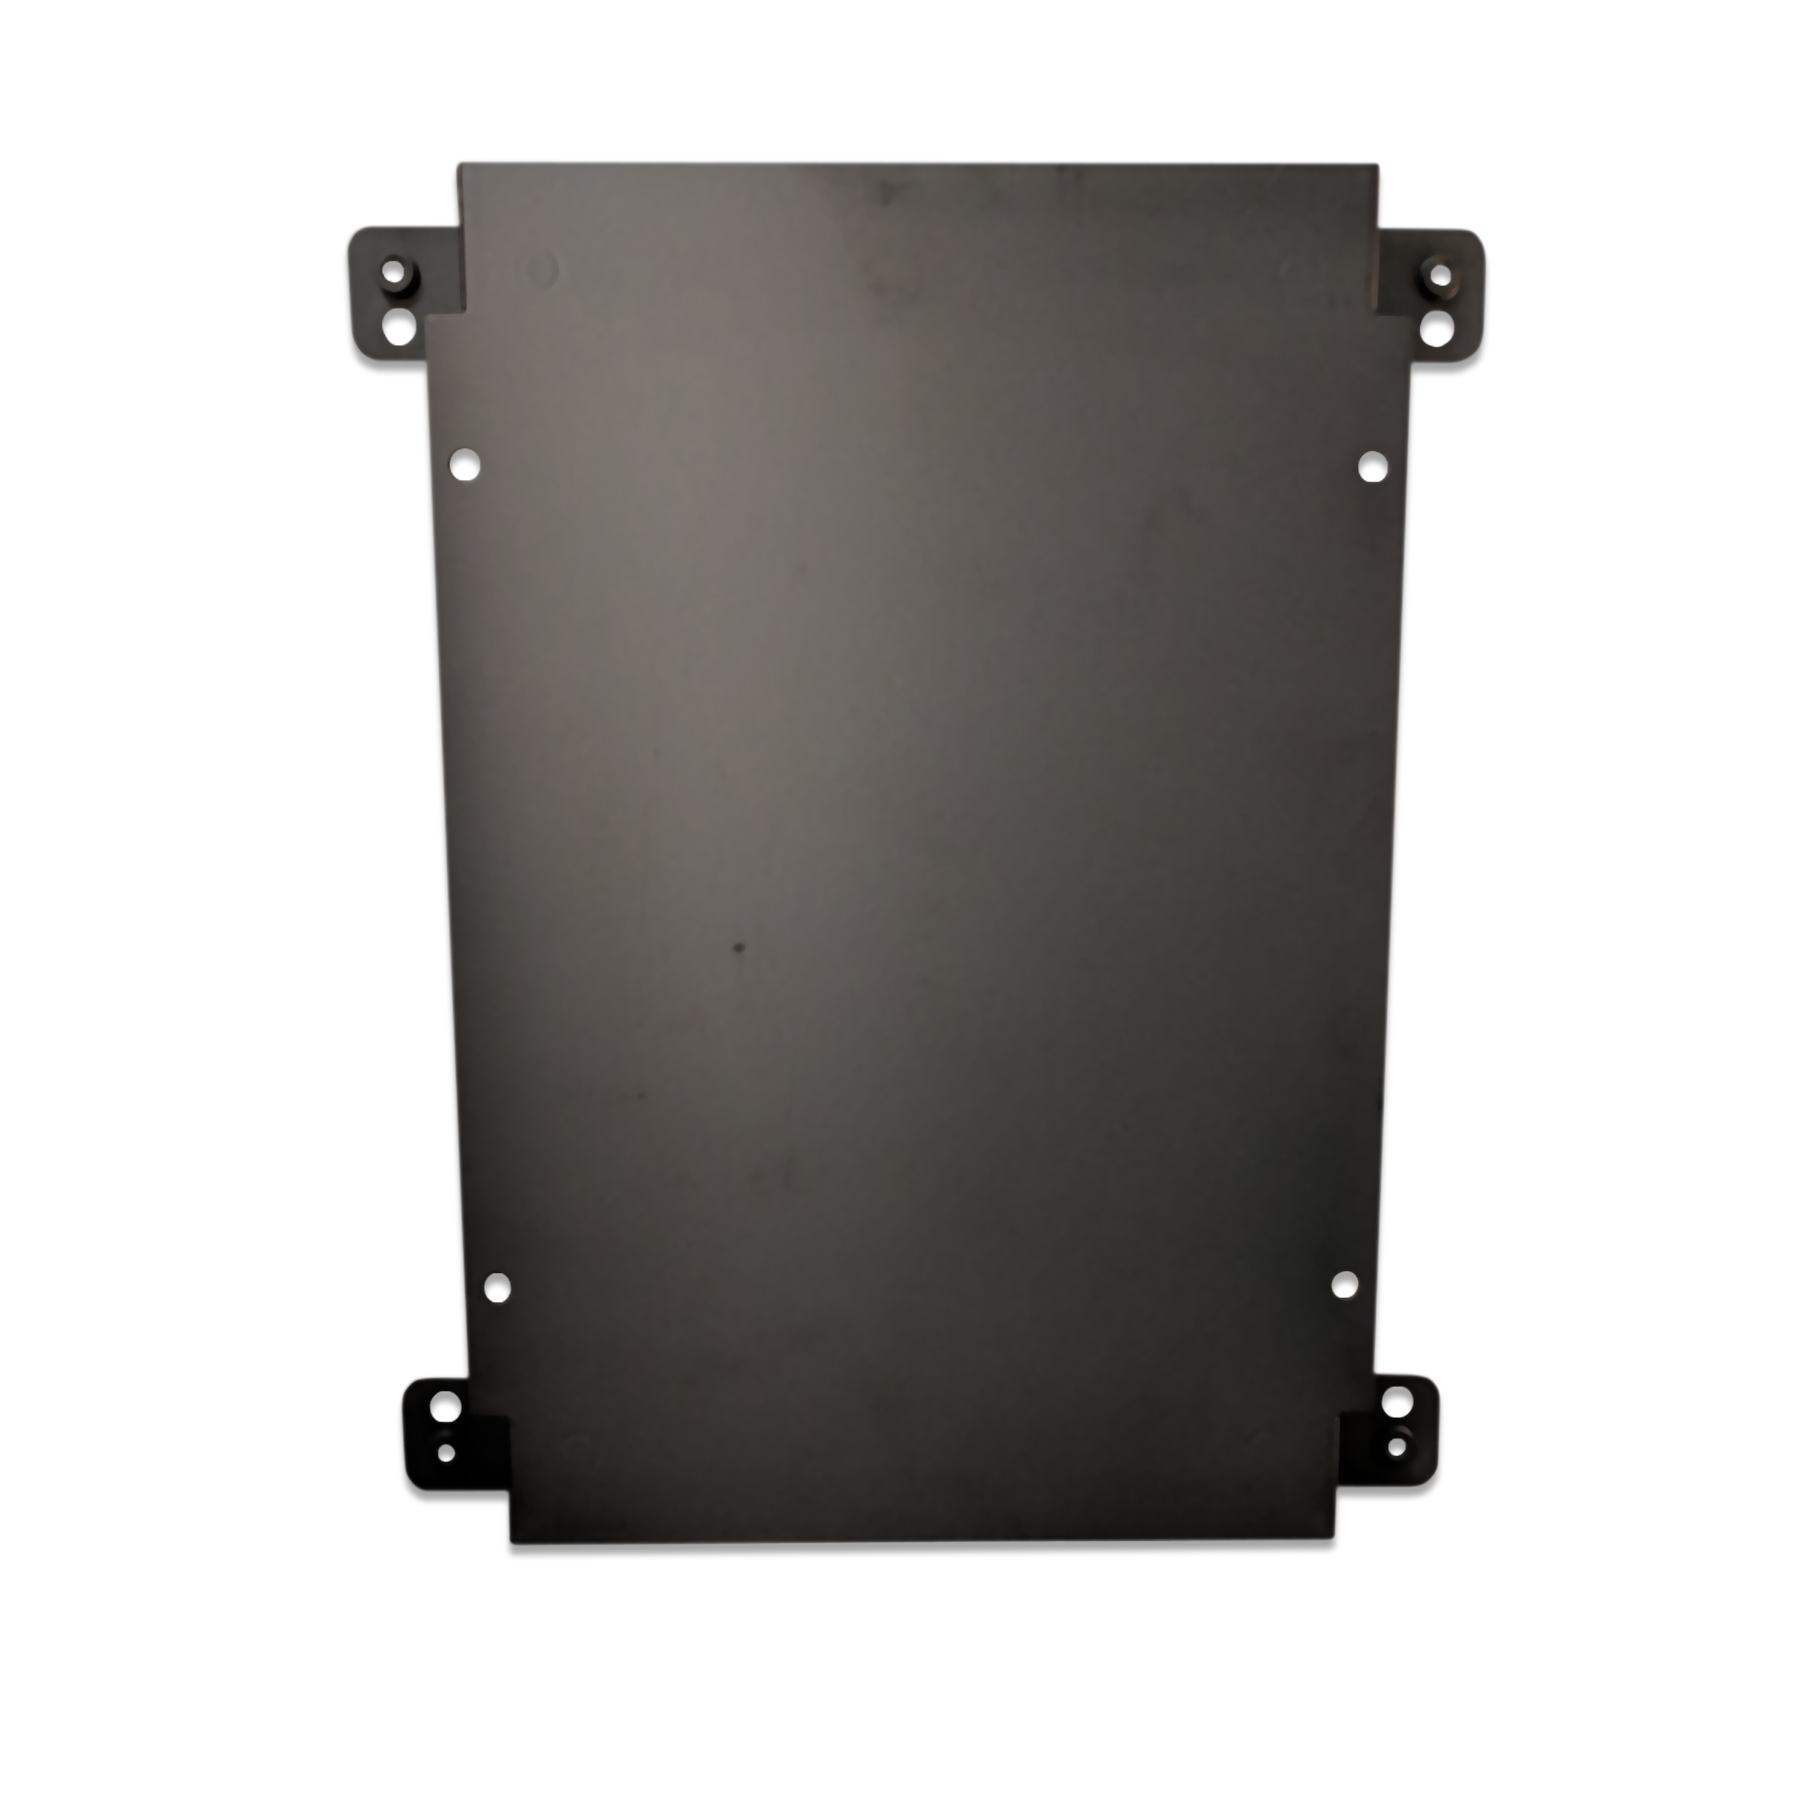 Back PC Board Enclosure Assembly